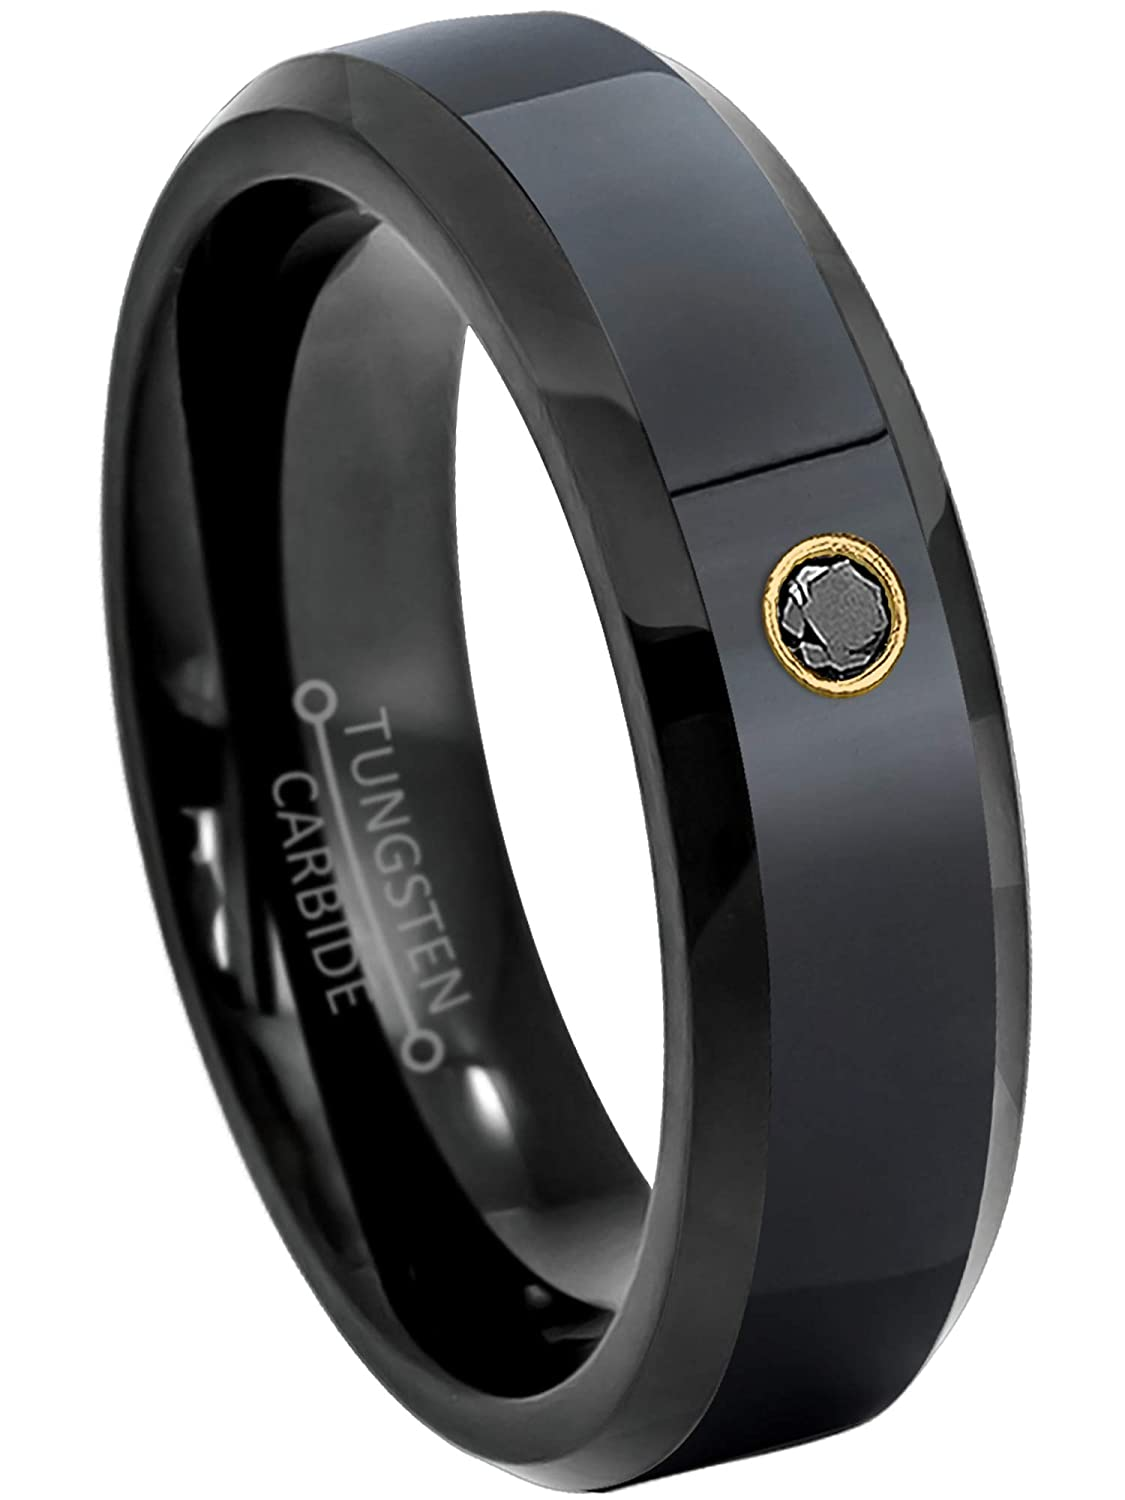 April Birthstone Ring 6MM Comfort Fit Brushed Black Ion Beveled Edge Tungsten Carbide Wedding Band Jewelry Avalanche 0.07ct Black Diamond Tungsten Ring